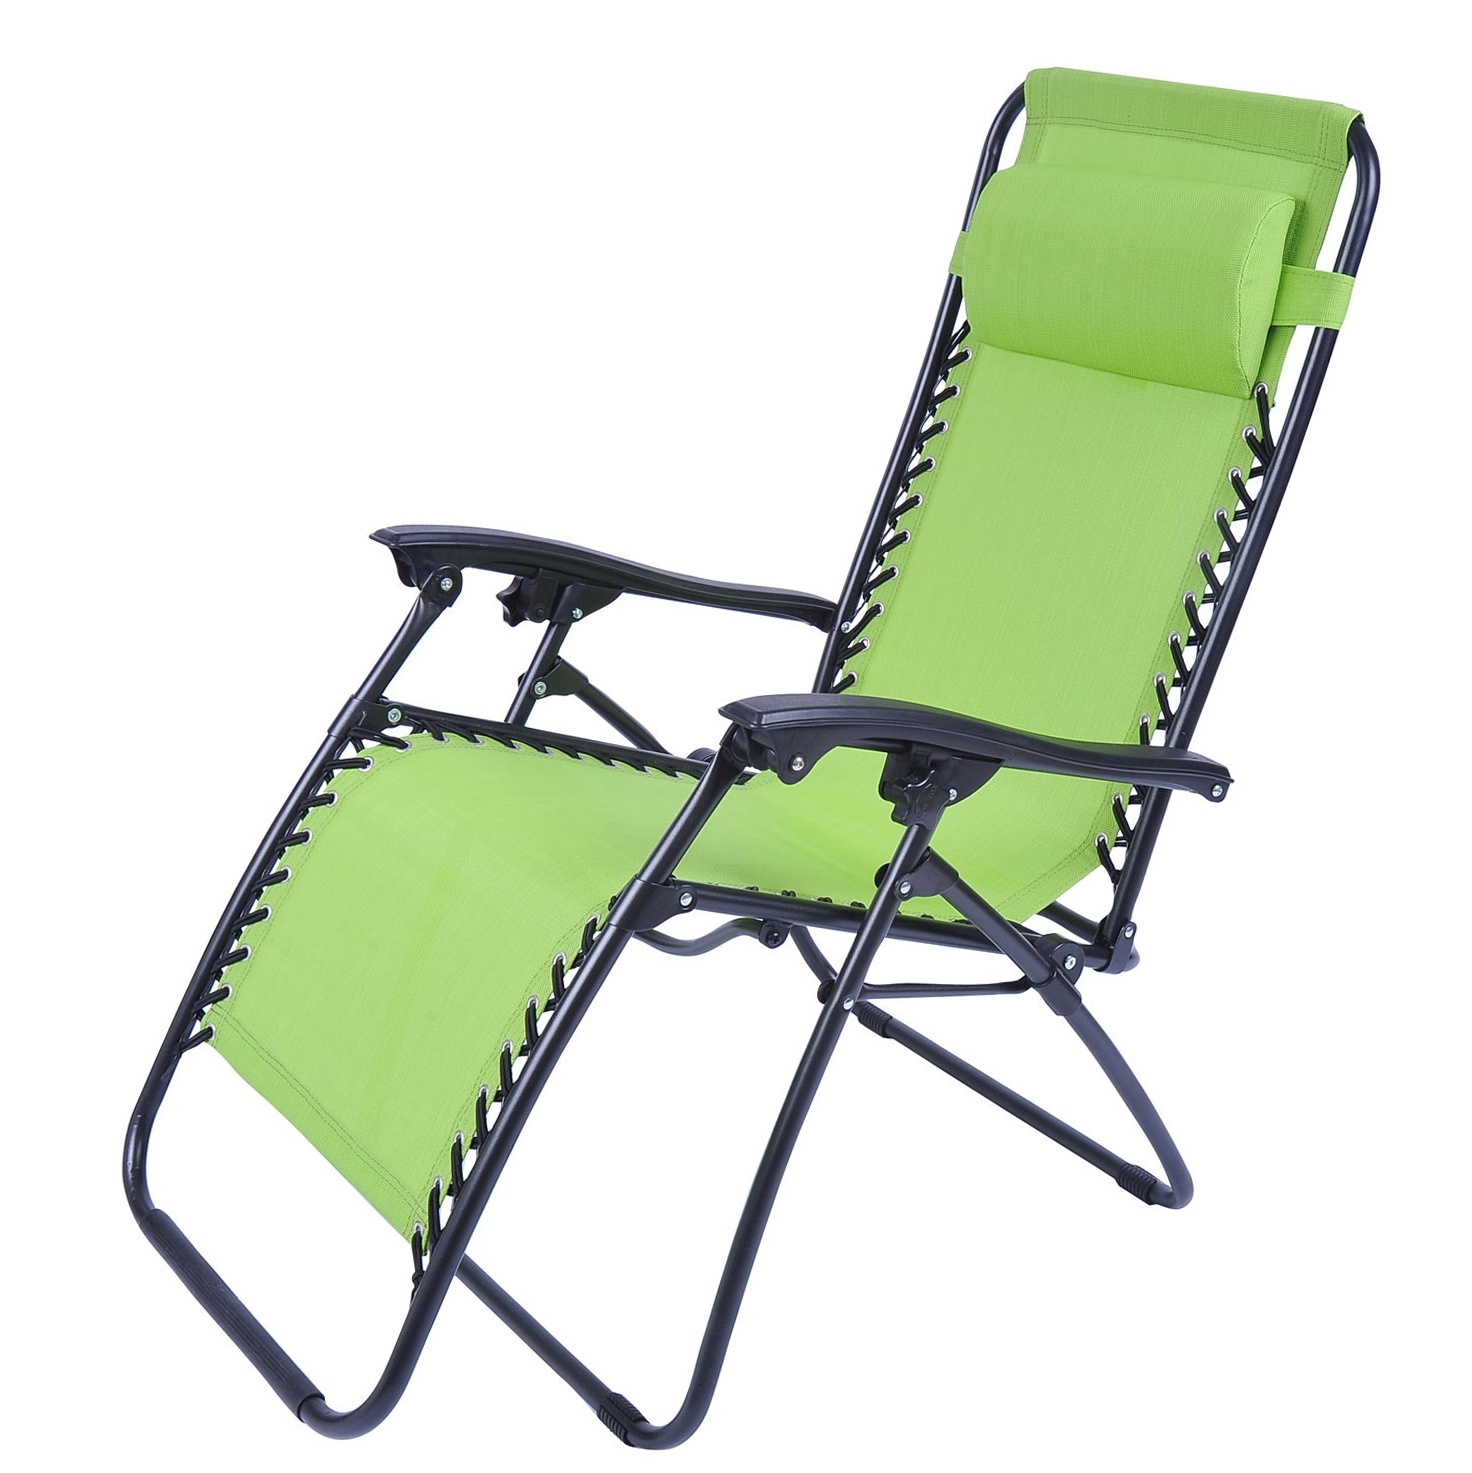 Folding Chaise Lounge Lawn Chairs Regarding Most Up To Date Folding Chaise Lounge Chair Patio Outdoor Pool Beach Lawn Recliner (View 5 of 15)